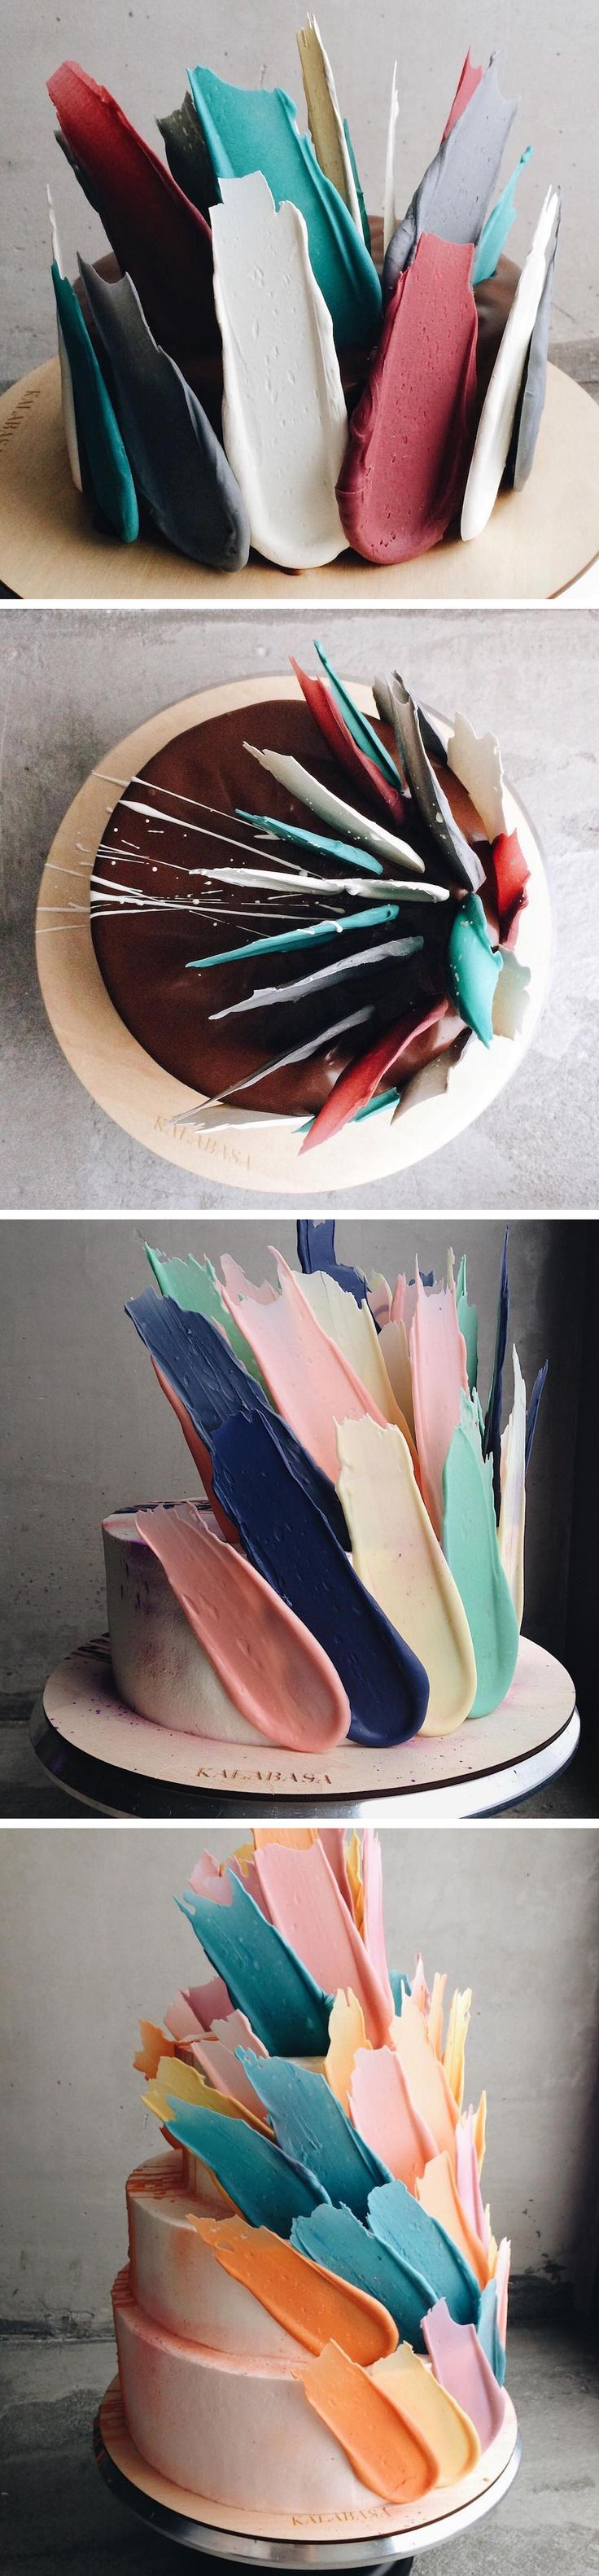 Abstract Cakes Topped With Chocolate Brushstrokes